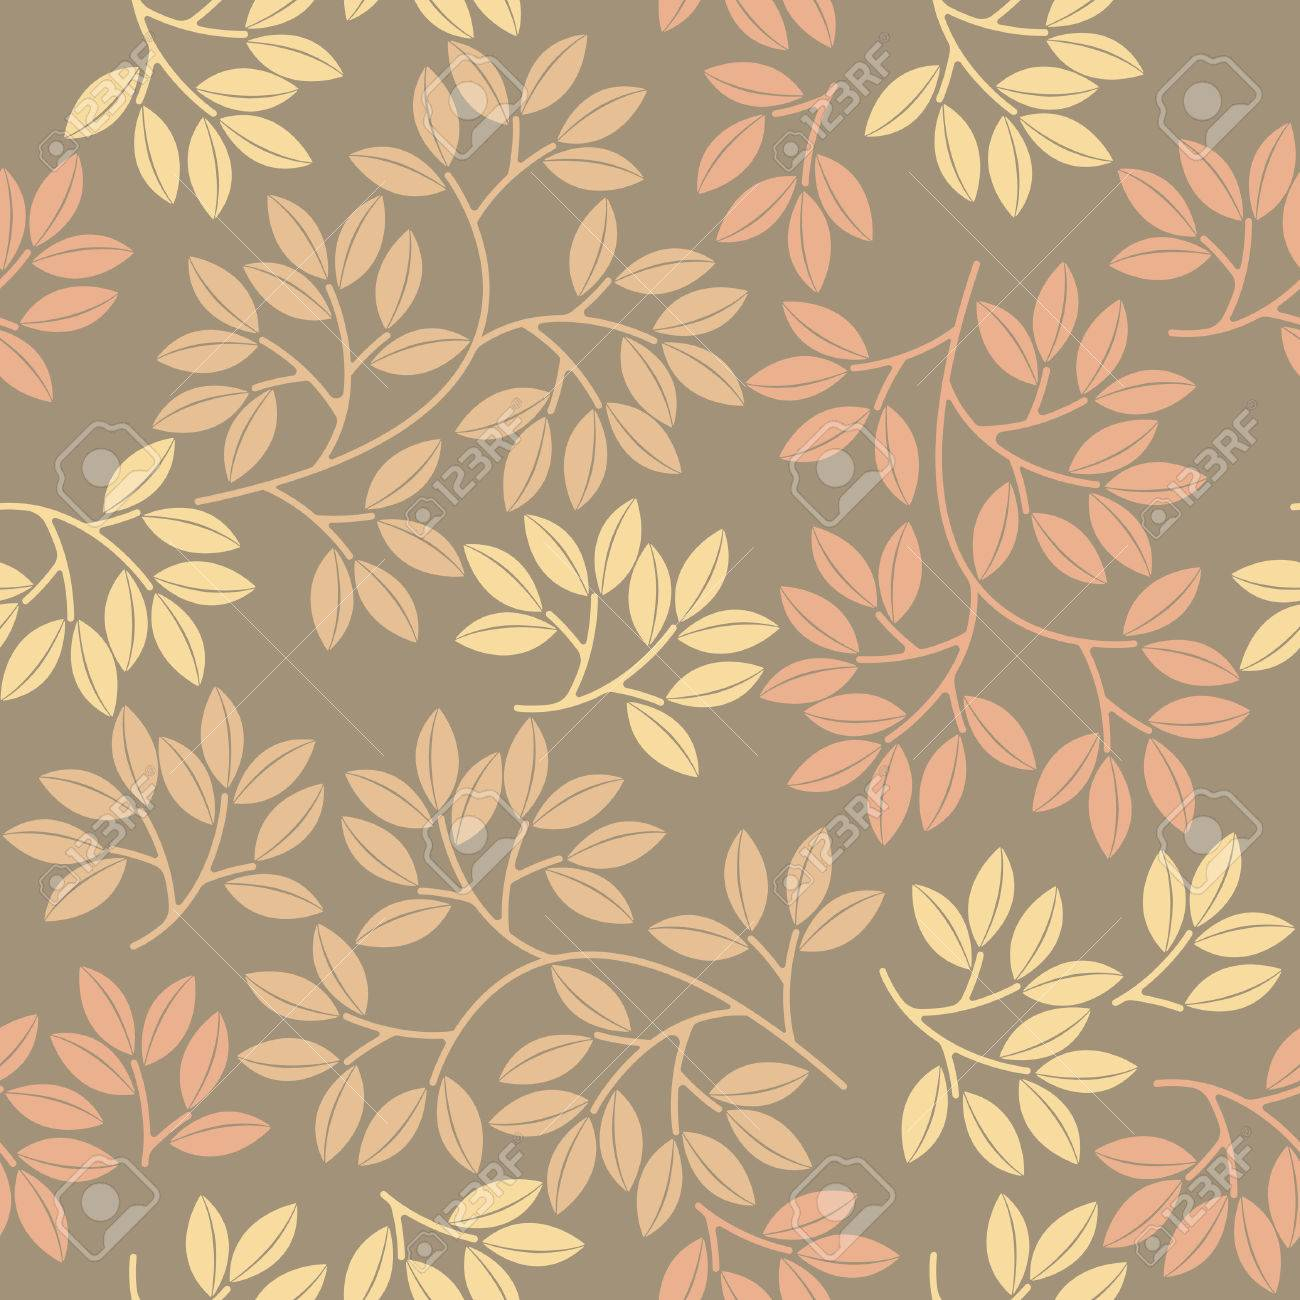 Spring Seamless Pattern With Stylish Leaves Can Be Used For Wallpaper